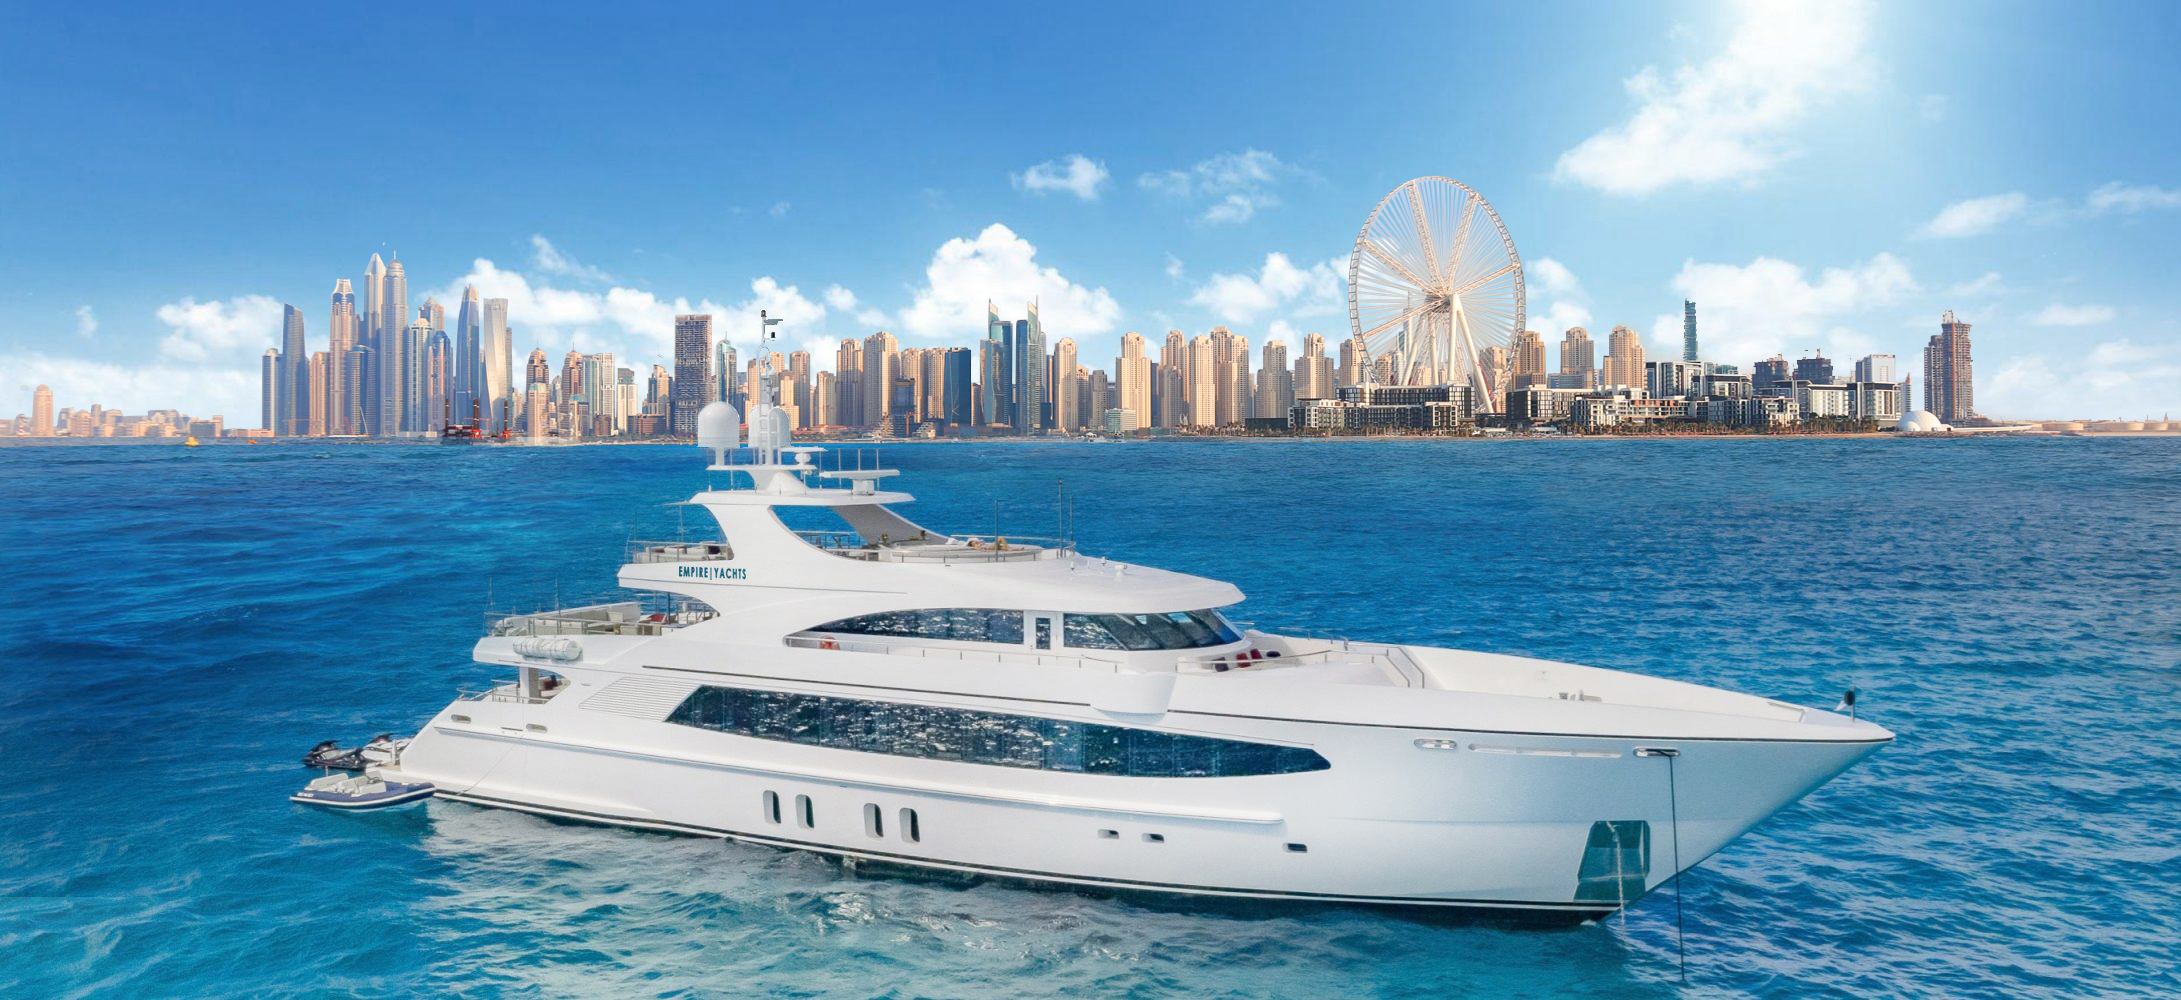 Empire Yachts - Hero Image - Dubai Skyline